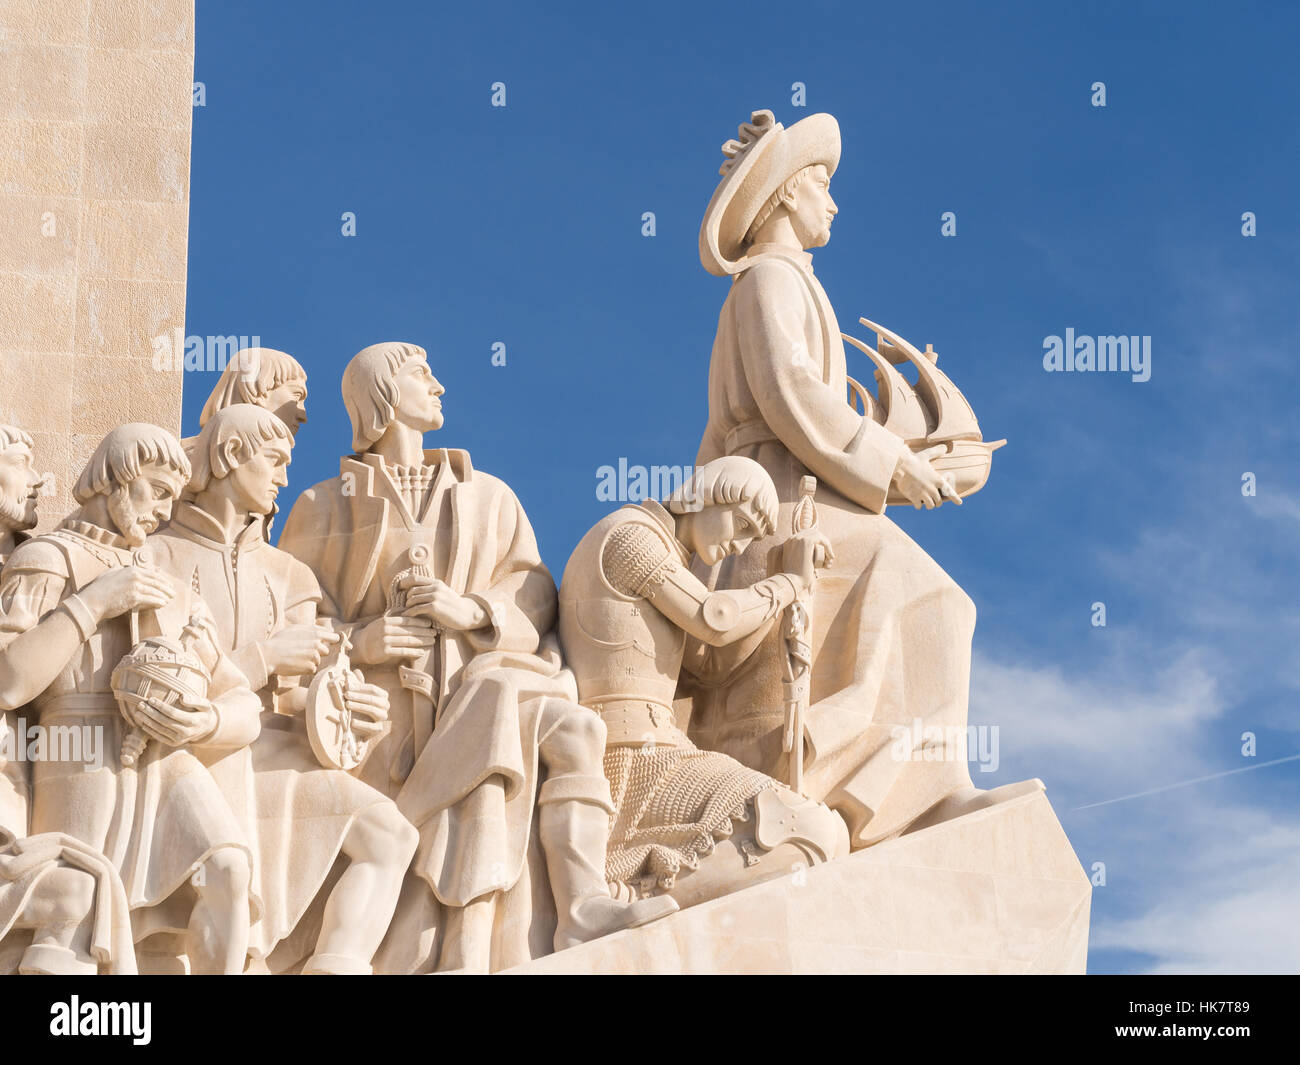 Monument to the Discoveries of the New World in Belem, Lisbon, Portugal. - Stock Image